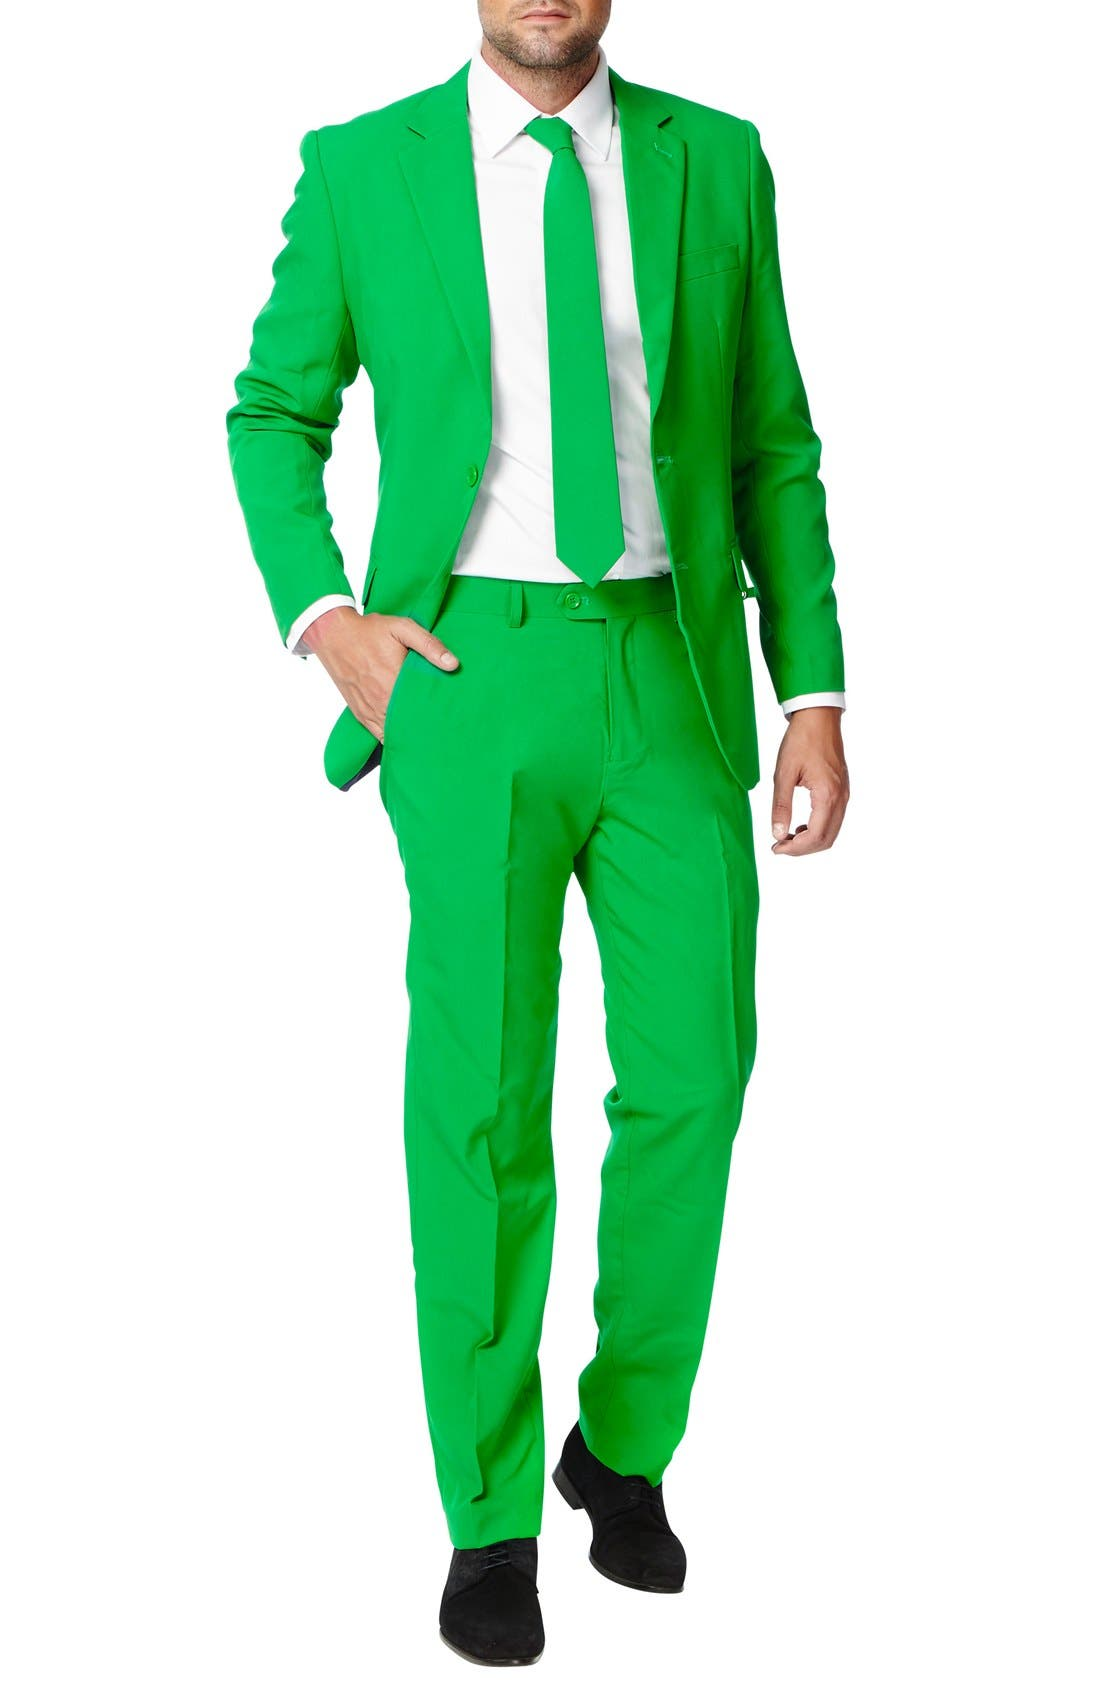 Main Image - OppoSuits 'Evergreen' Trim Fit Suit with Tie